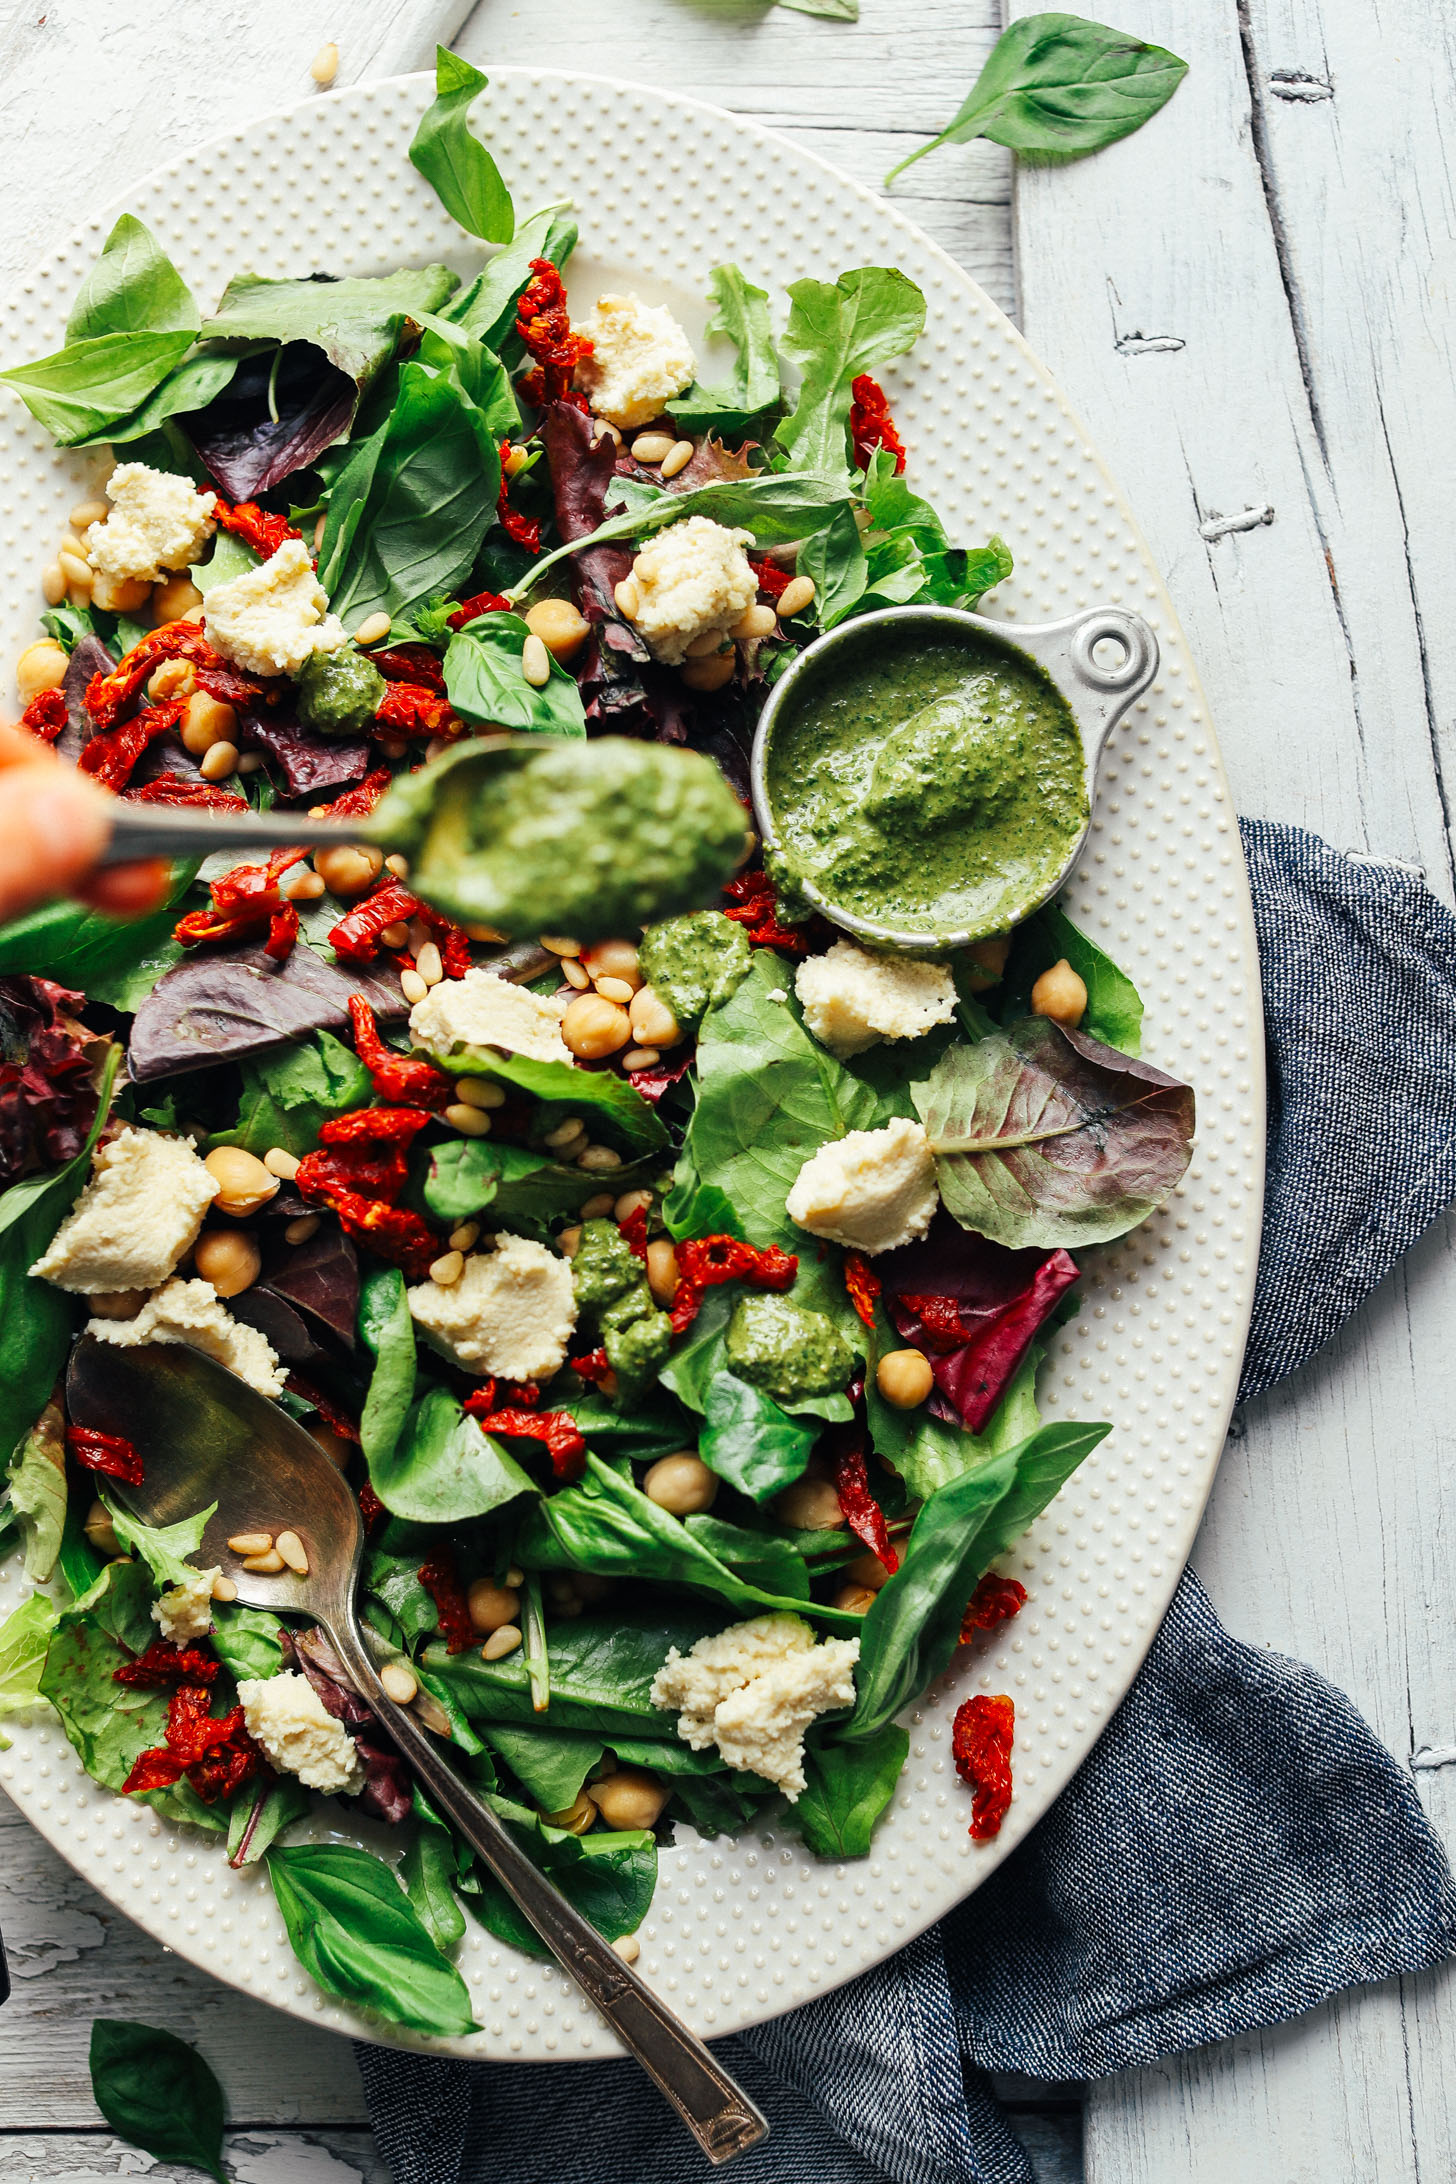 Using a spoon to drizzle Vibrant Pesto over salad with almond ricotta and sun-dried tomatoes